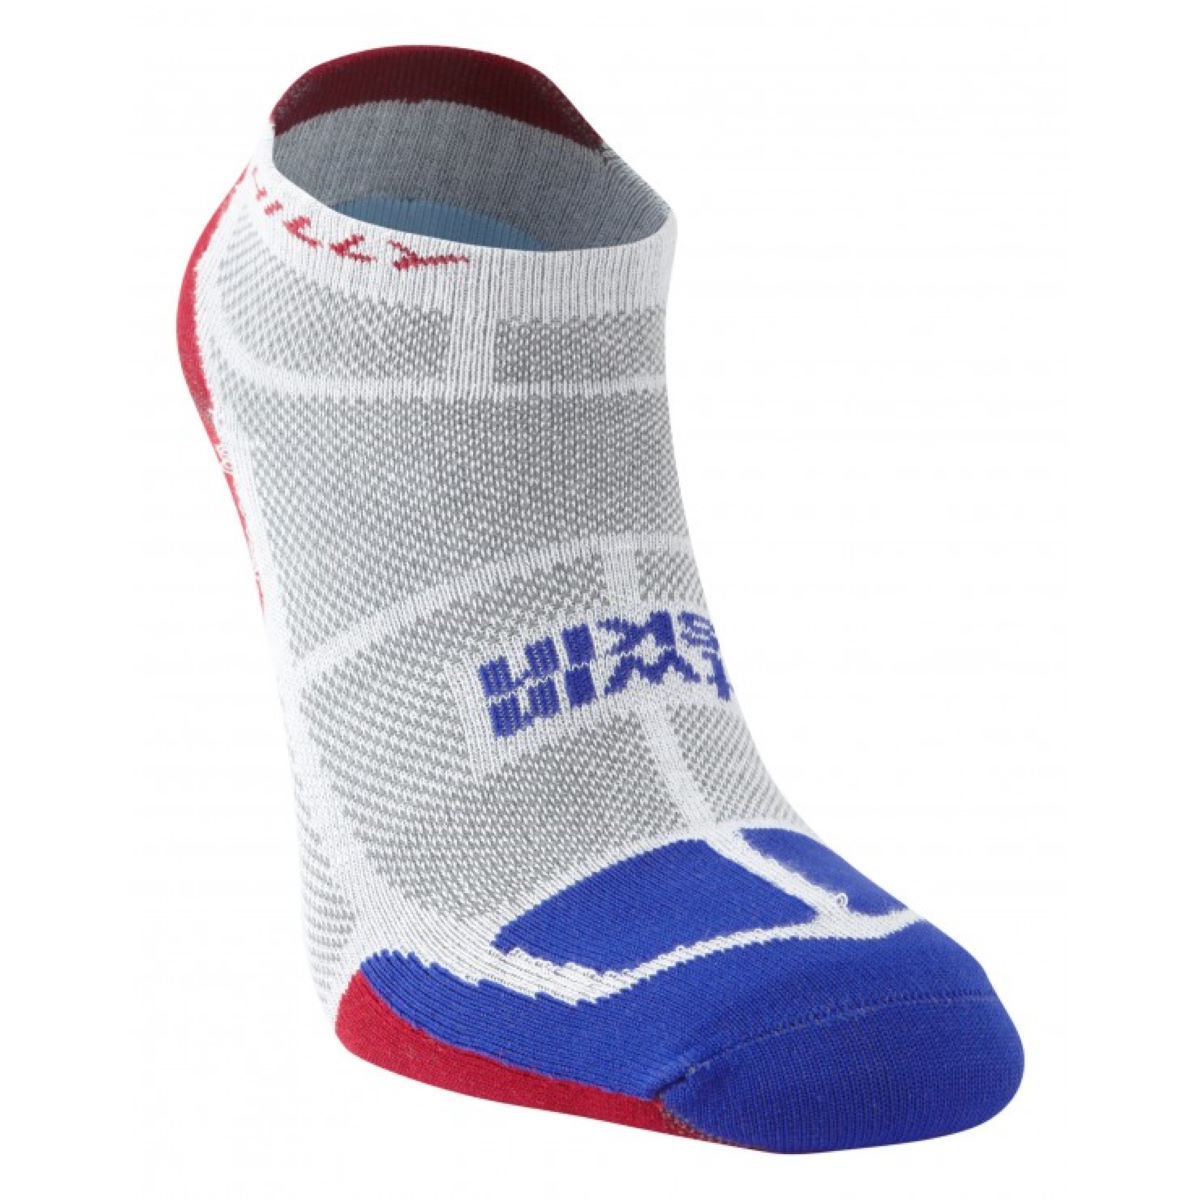 Chaussettes Hilly TwinSkin - XL Grey/Blue/Red Chaussettes de running